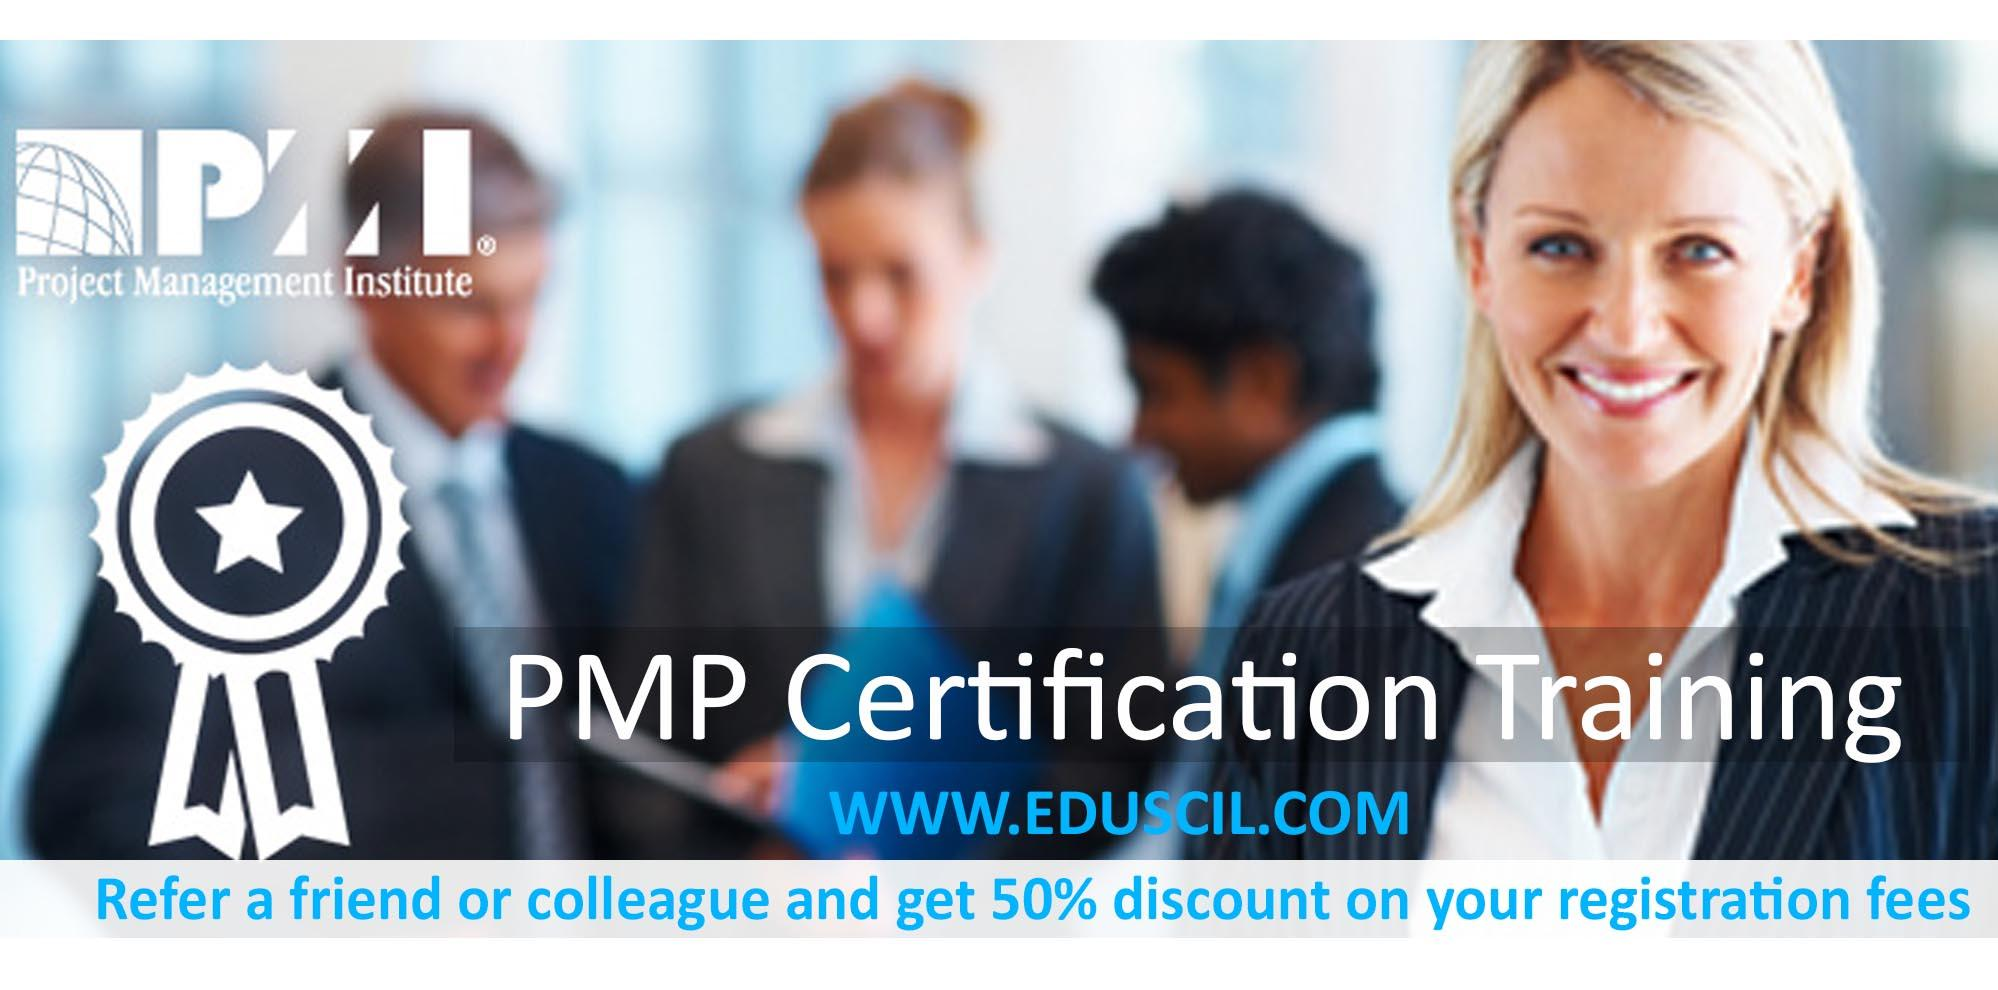 PMP® Certification Training Course in Greensboro, NC- USA | Eduscil